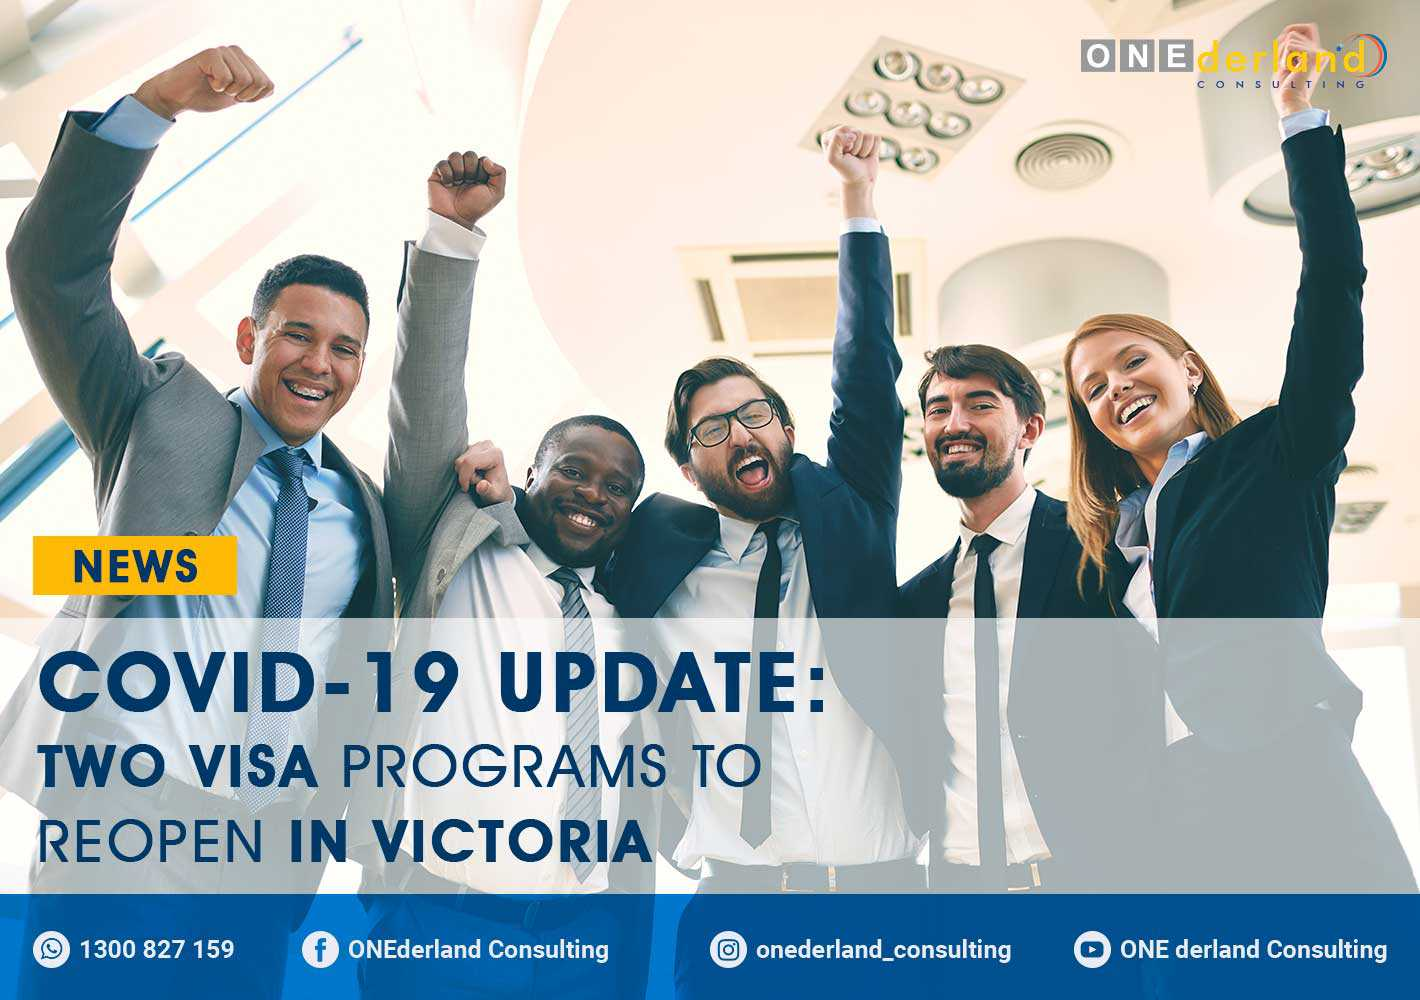 COVID-19 Update: Two Visa Program To Reopen In Victoria